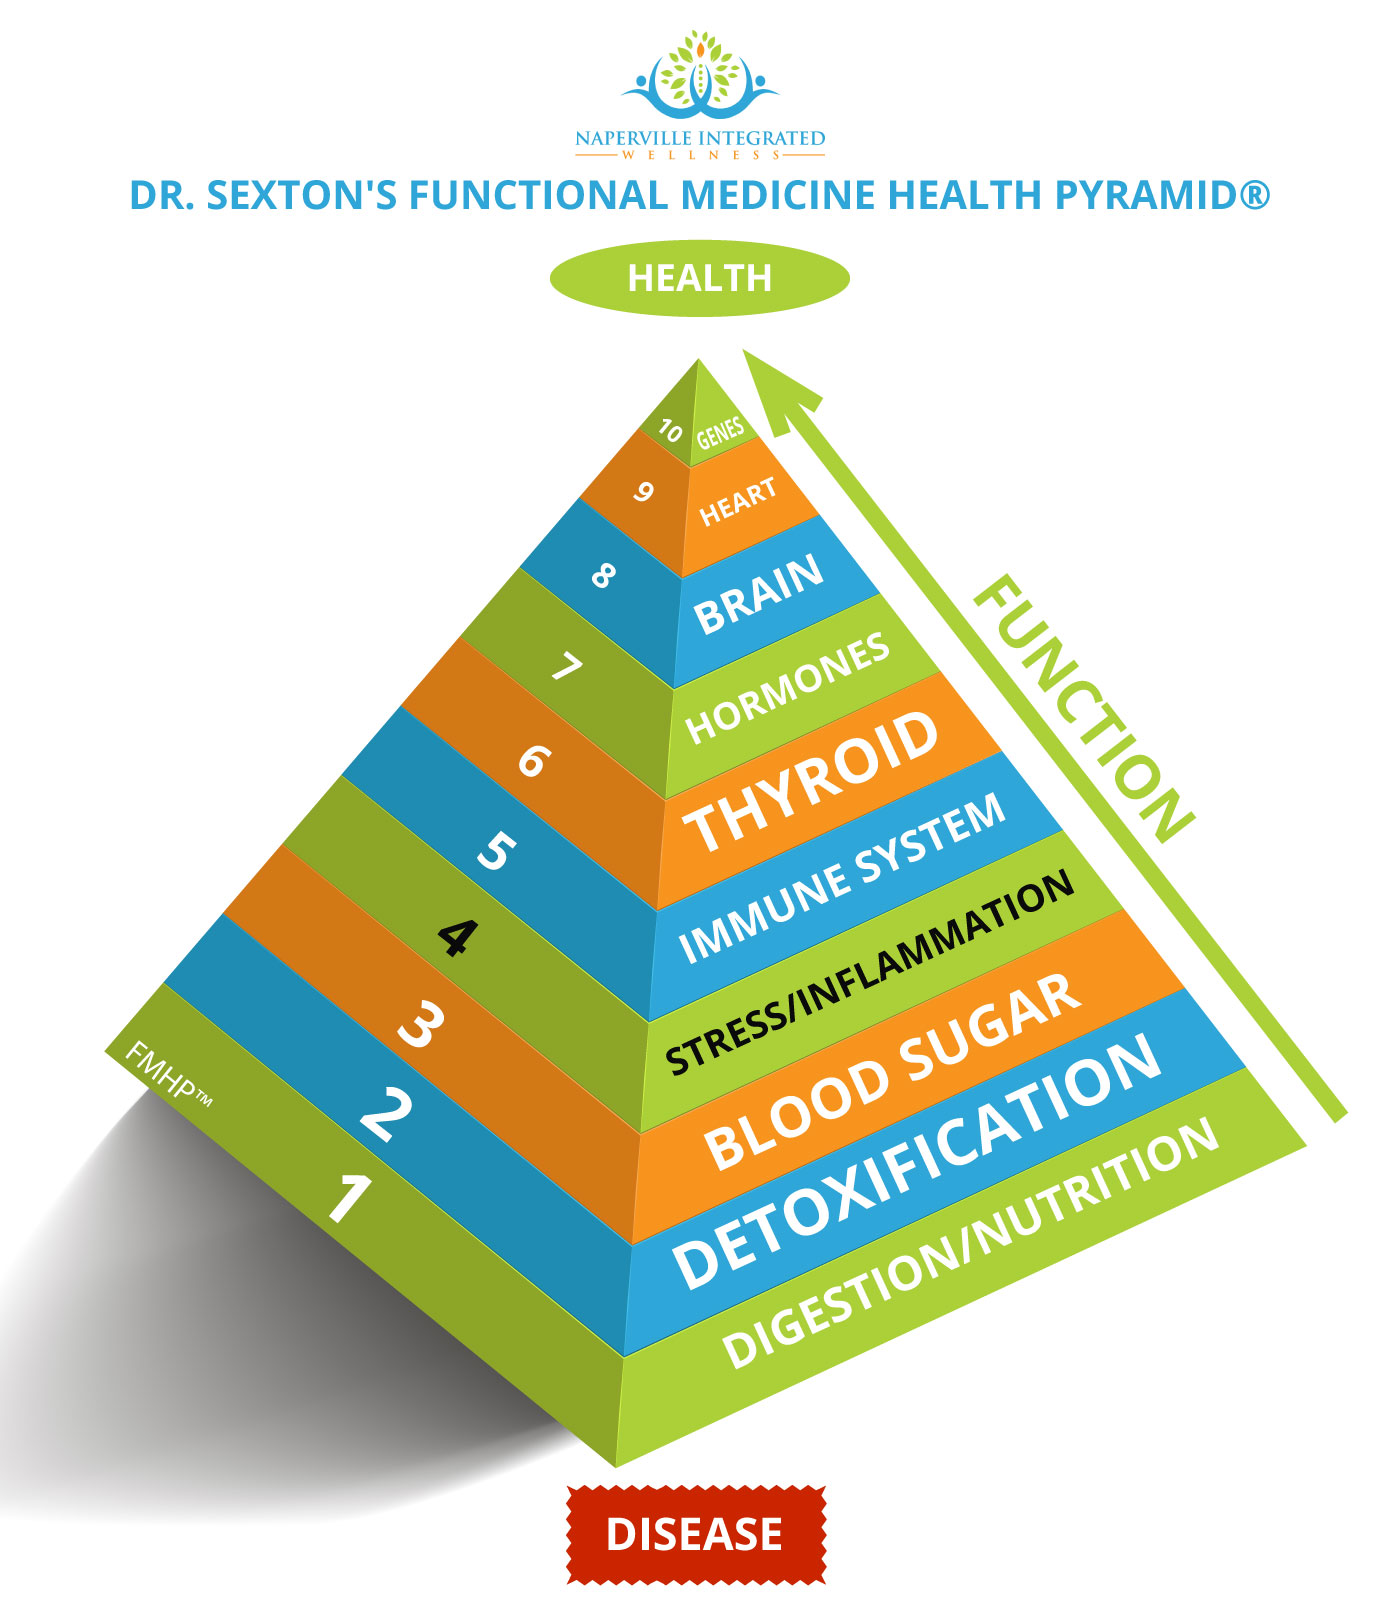 Functional Medicine Health Pyramid # 4 Stress and